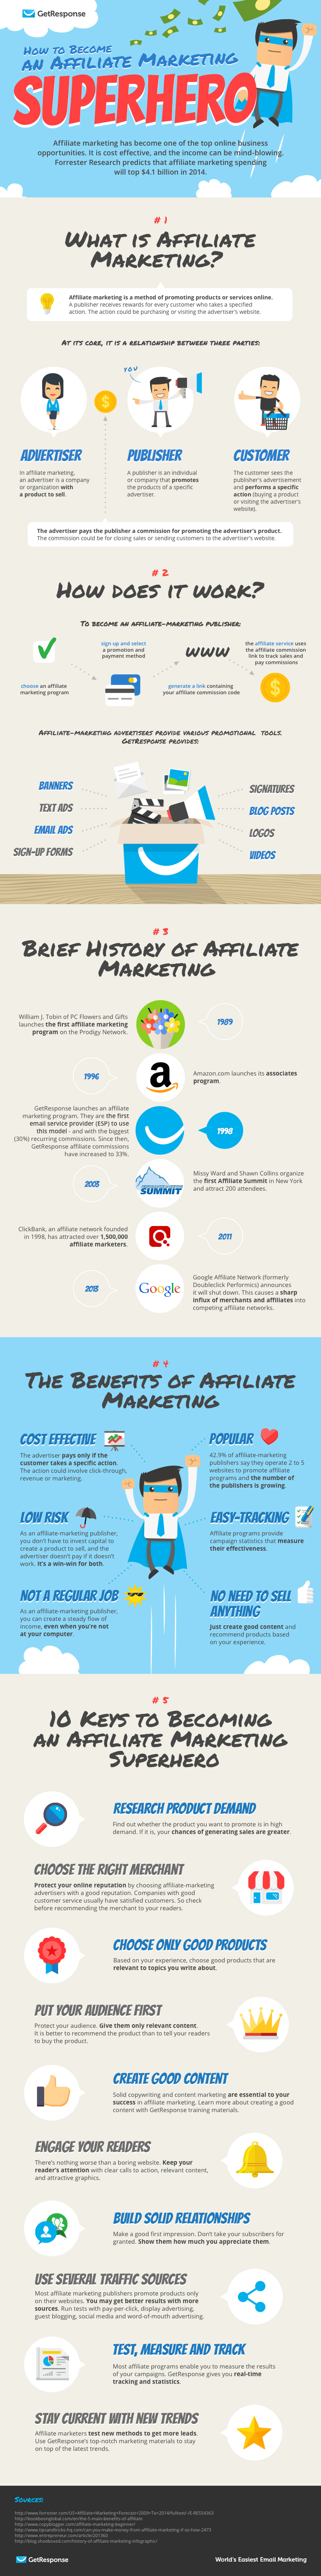 Become-An-Affiliate-Marketer